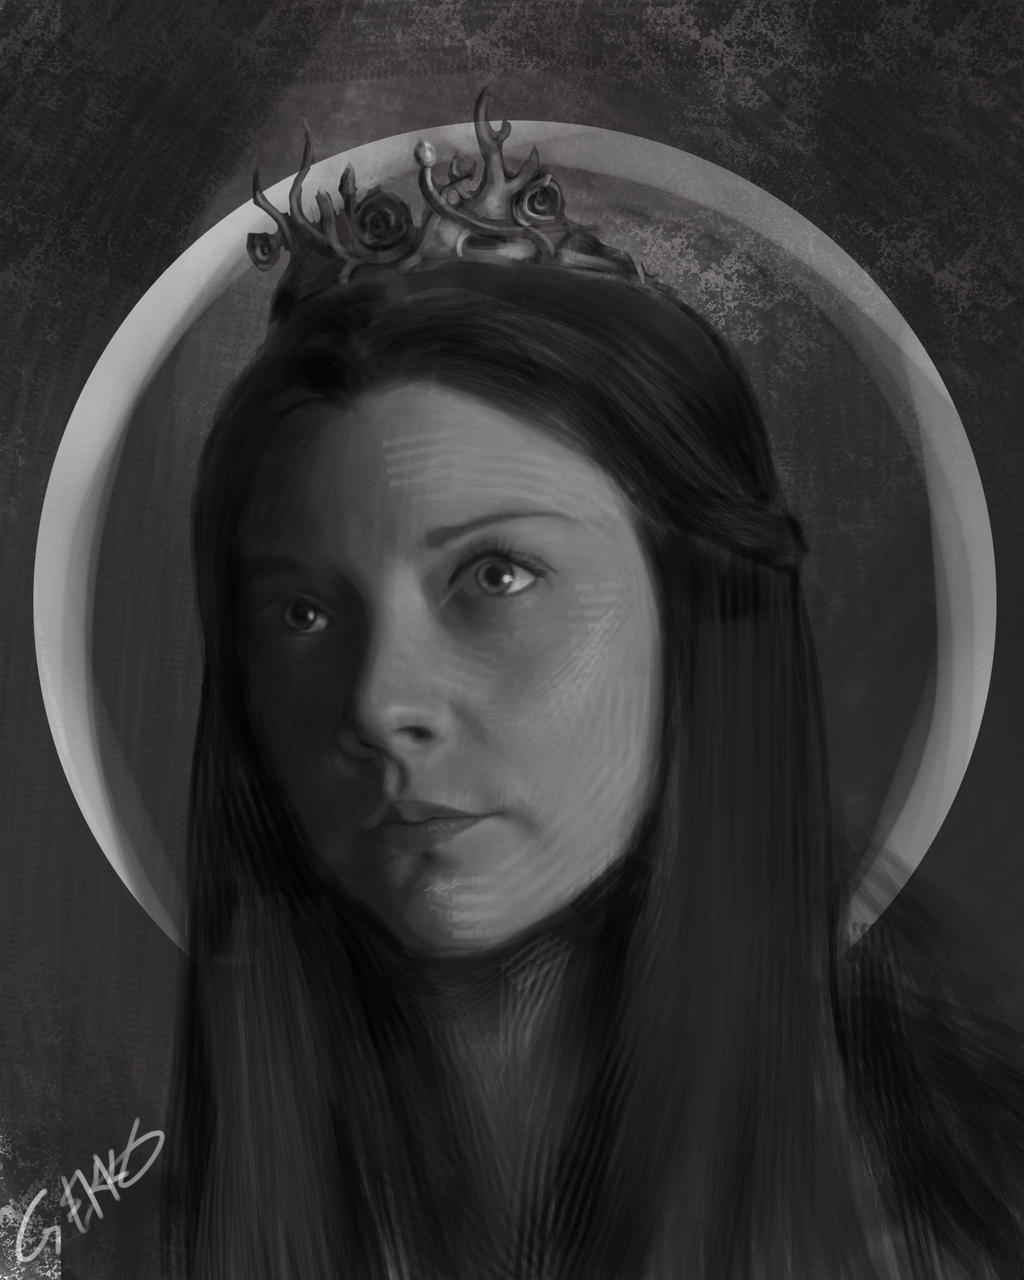 Game Of Thrones Queen Margaery Tyrell By Thkhs On Deviantart